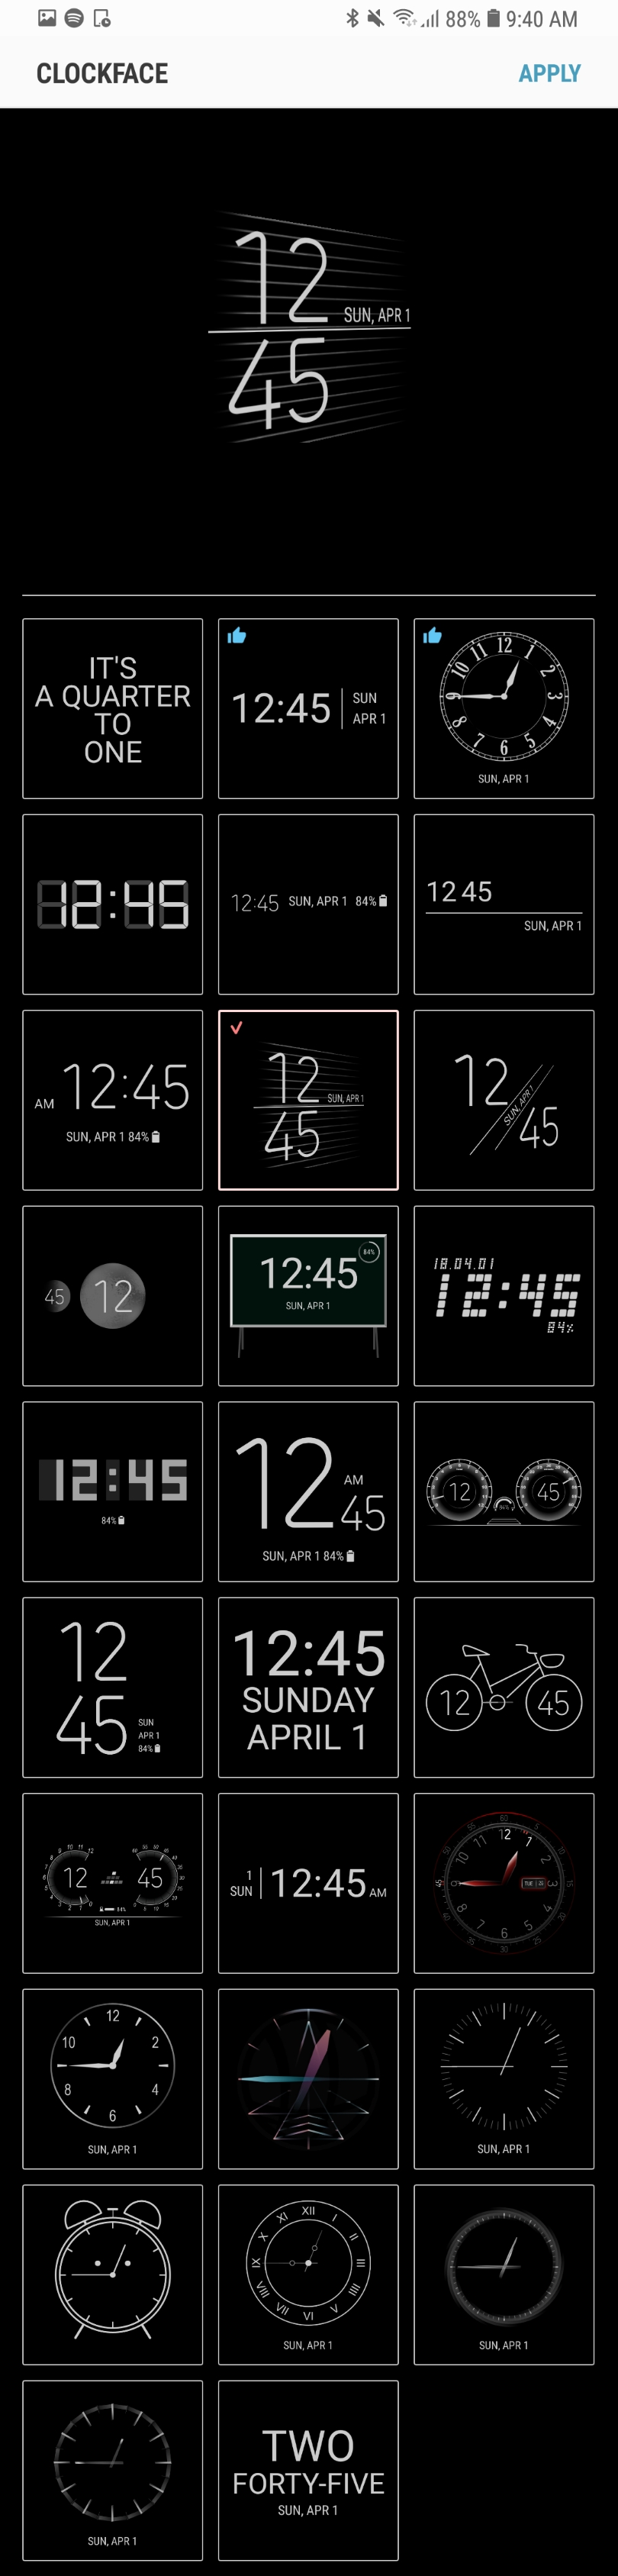 Samsung adds nearly 30 new clockfaces to 'Always-On Display